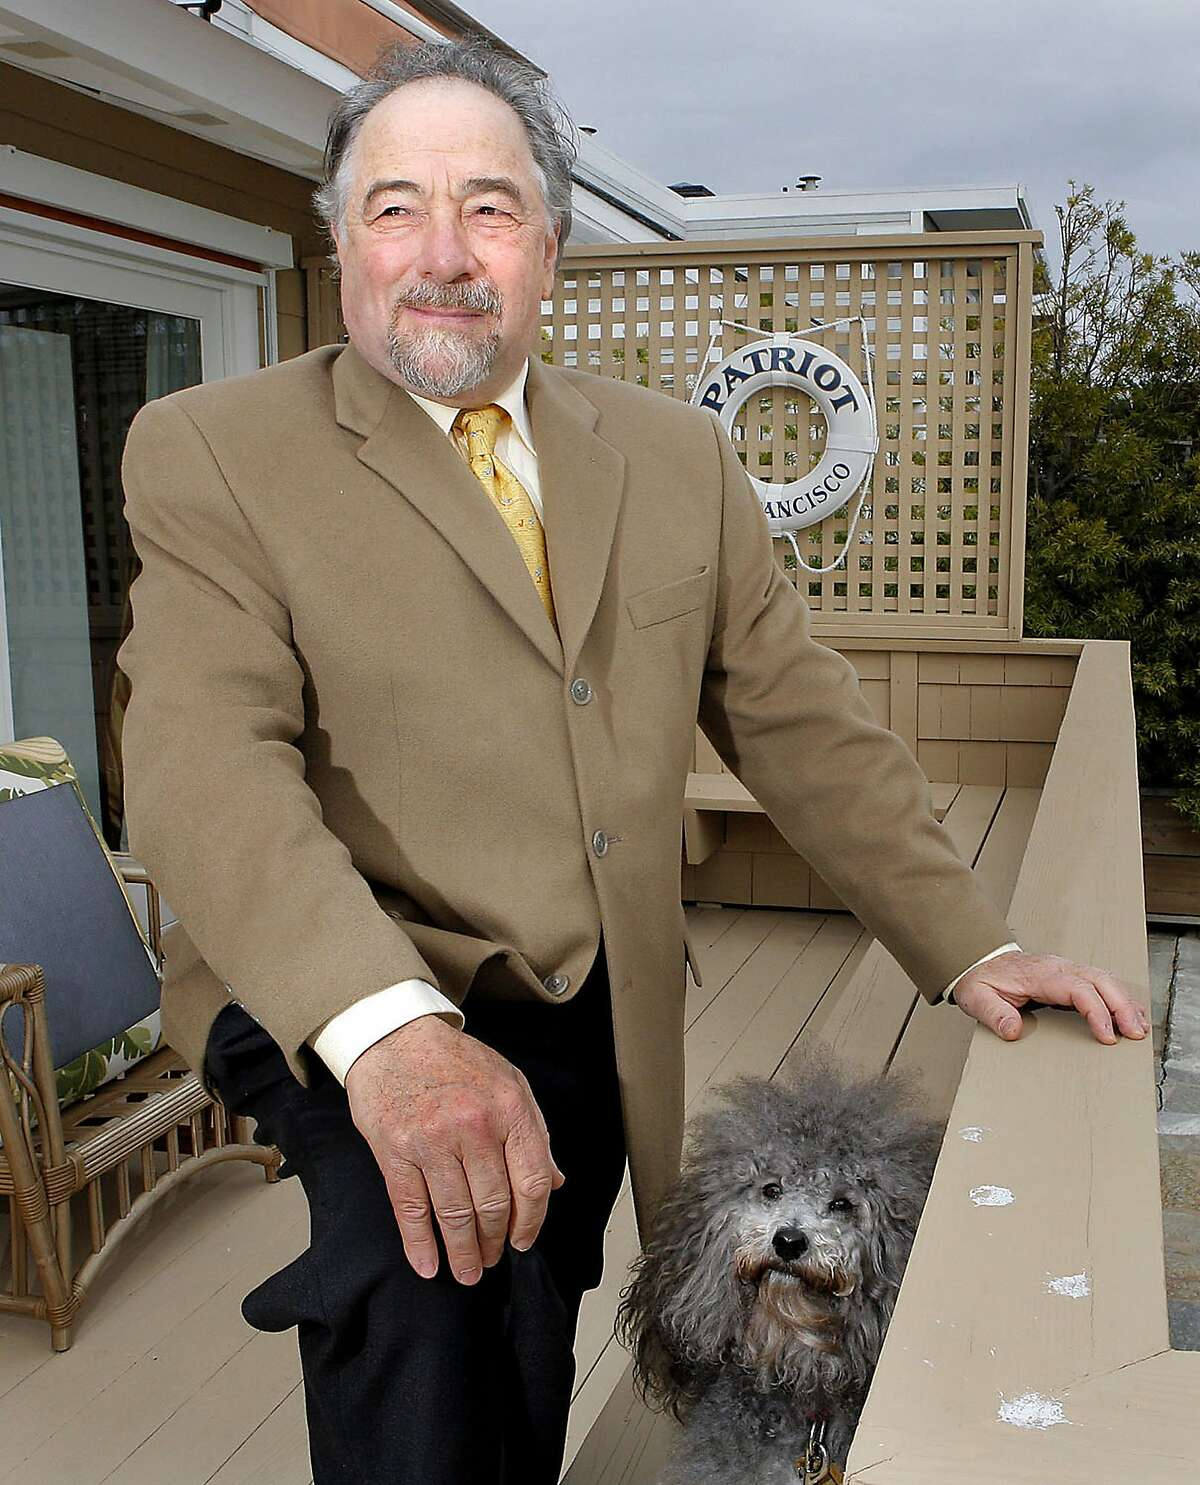 """** FILE ** In this Monday, Dec. 3, 2007 file photo, radio talk show host Michael Savage poses with his dog Teddy in Tiburon, Calif. Radio talk show host Michael Savage, who described 99 percent of children with autism as brats, said Monday July 21, 2008 he was trying to """"boldly awaken"""" parents to his view that many people are being wrongly diagnosed. (AP Photo/John Storey)"""